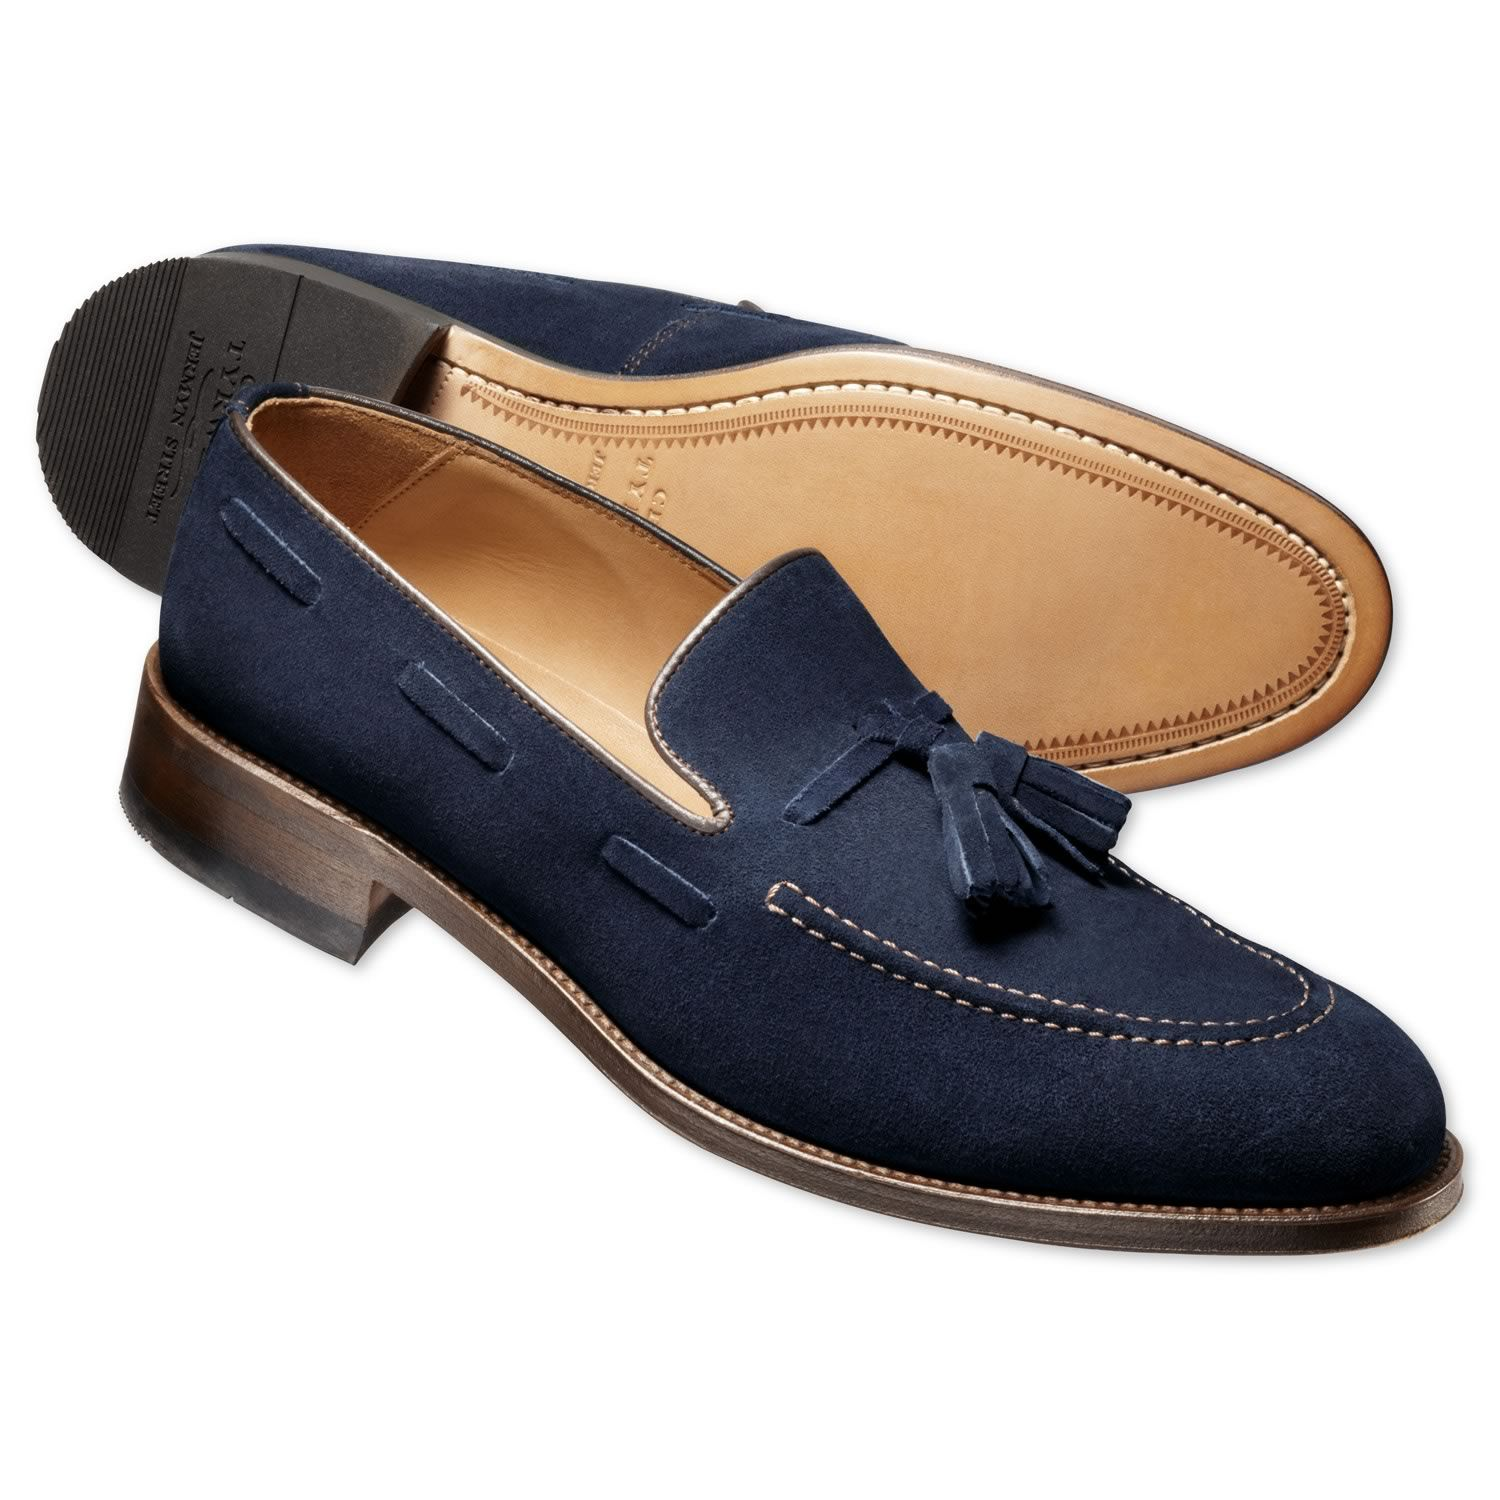 """Mens Loafer Guide - Tap the link to shop on our official online store! You can also join our affiliate and/or rewards programs for FREE! Slip on Shoes Guide - height increasing elevator men's loafers make you look taller. bows-n-ties: """" Dress Guide To Loafers """" Not a huge fan of loafers Know all the different Styles and Types of Loafers."""